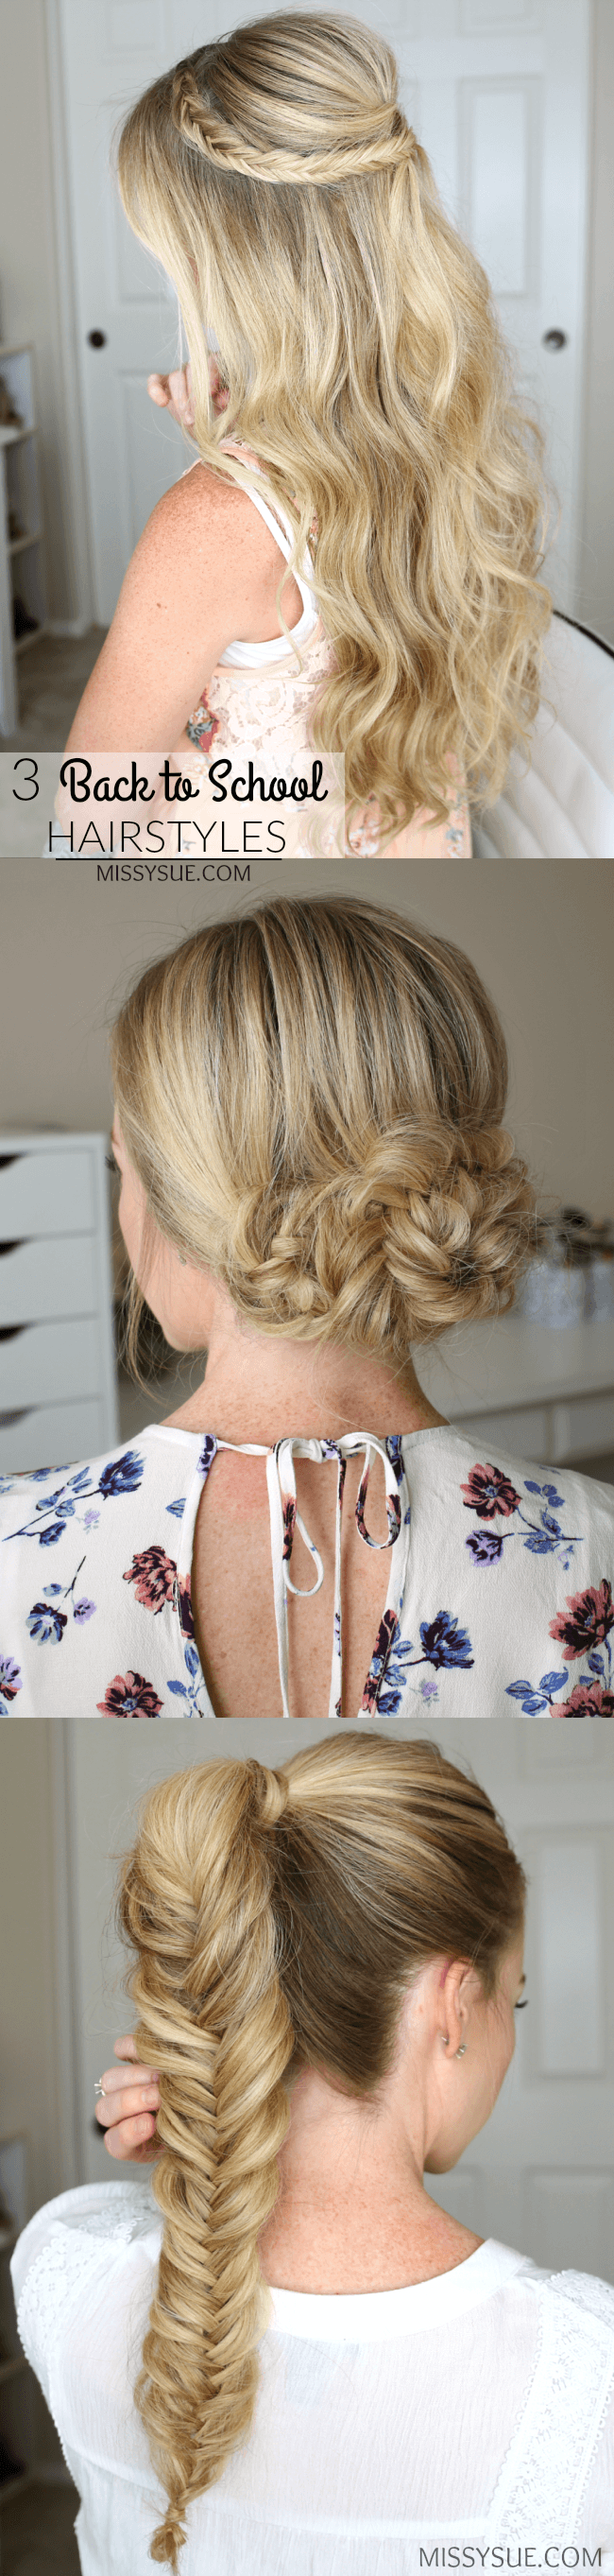 back-to-school-hairstyles-tutorial